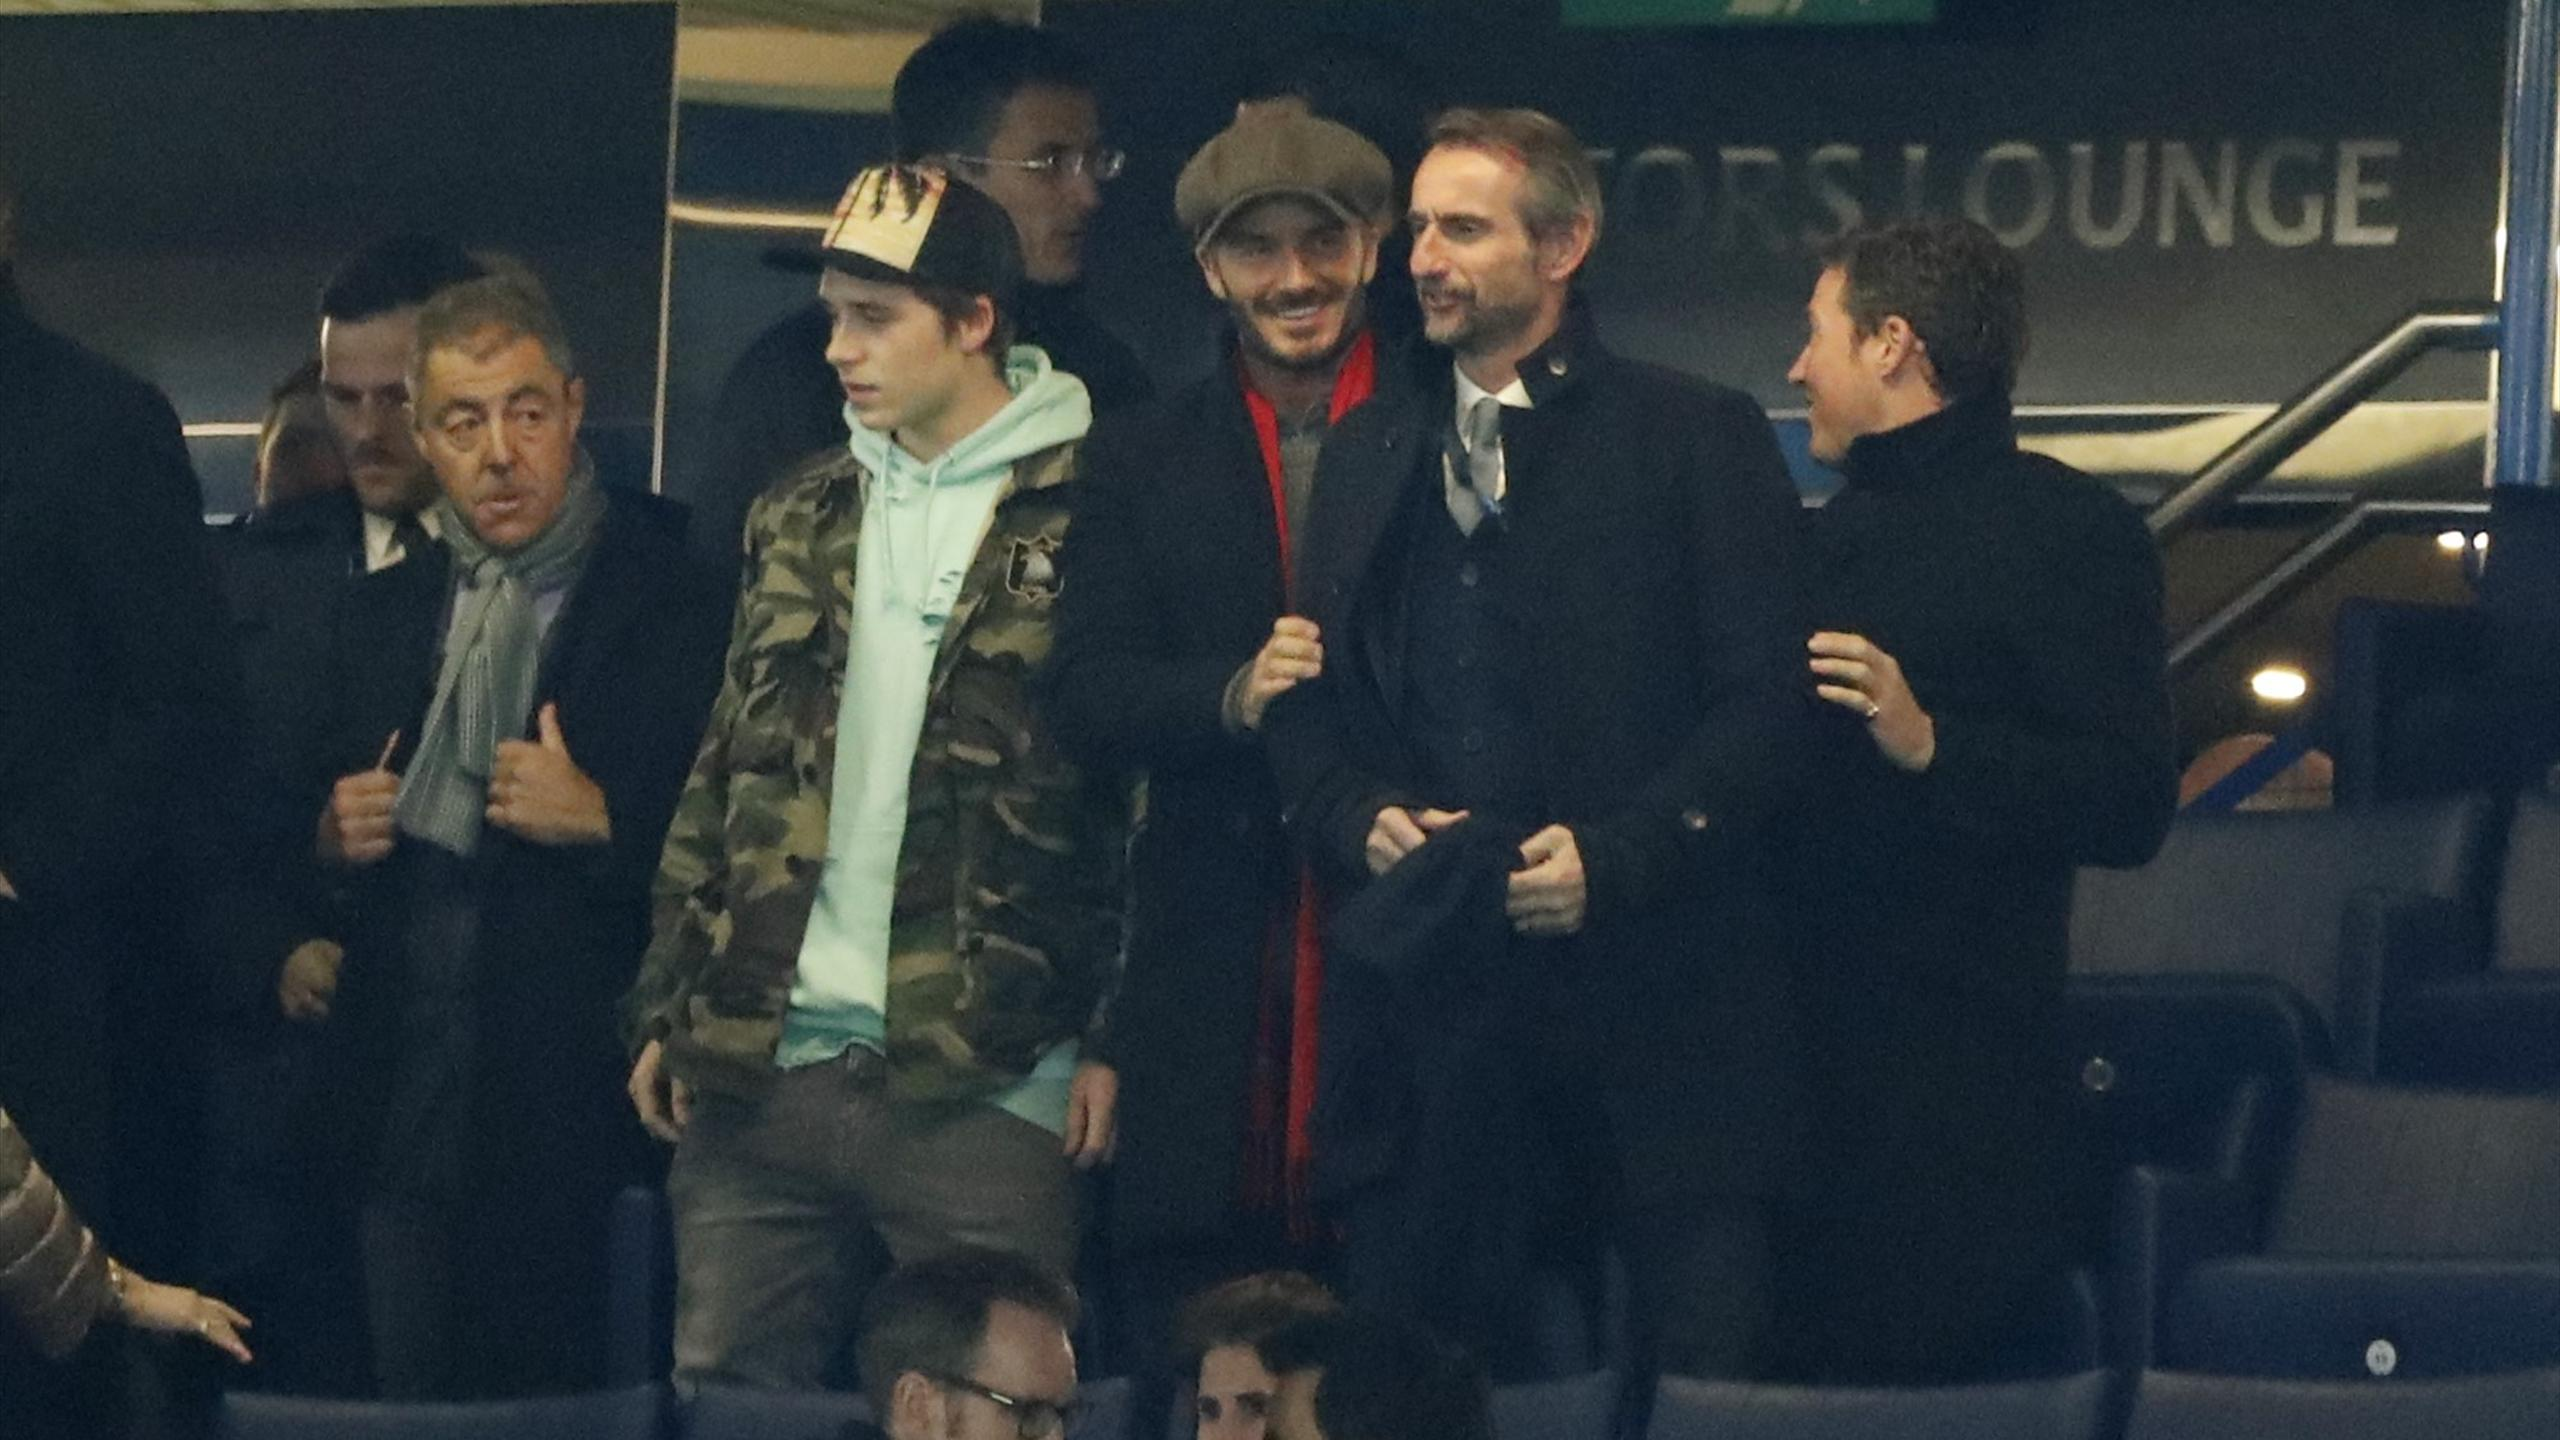 David Beckham with his son Brooklyn at Stamford Bridge for Chelsea v PSG